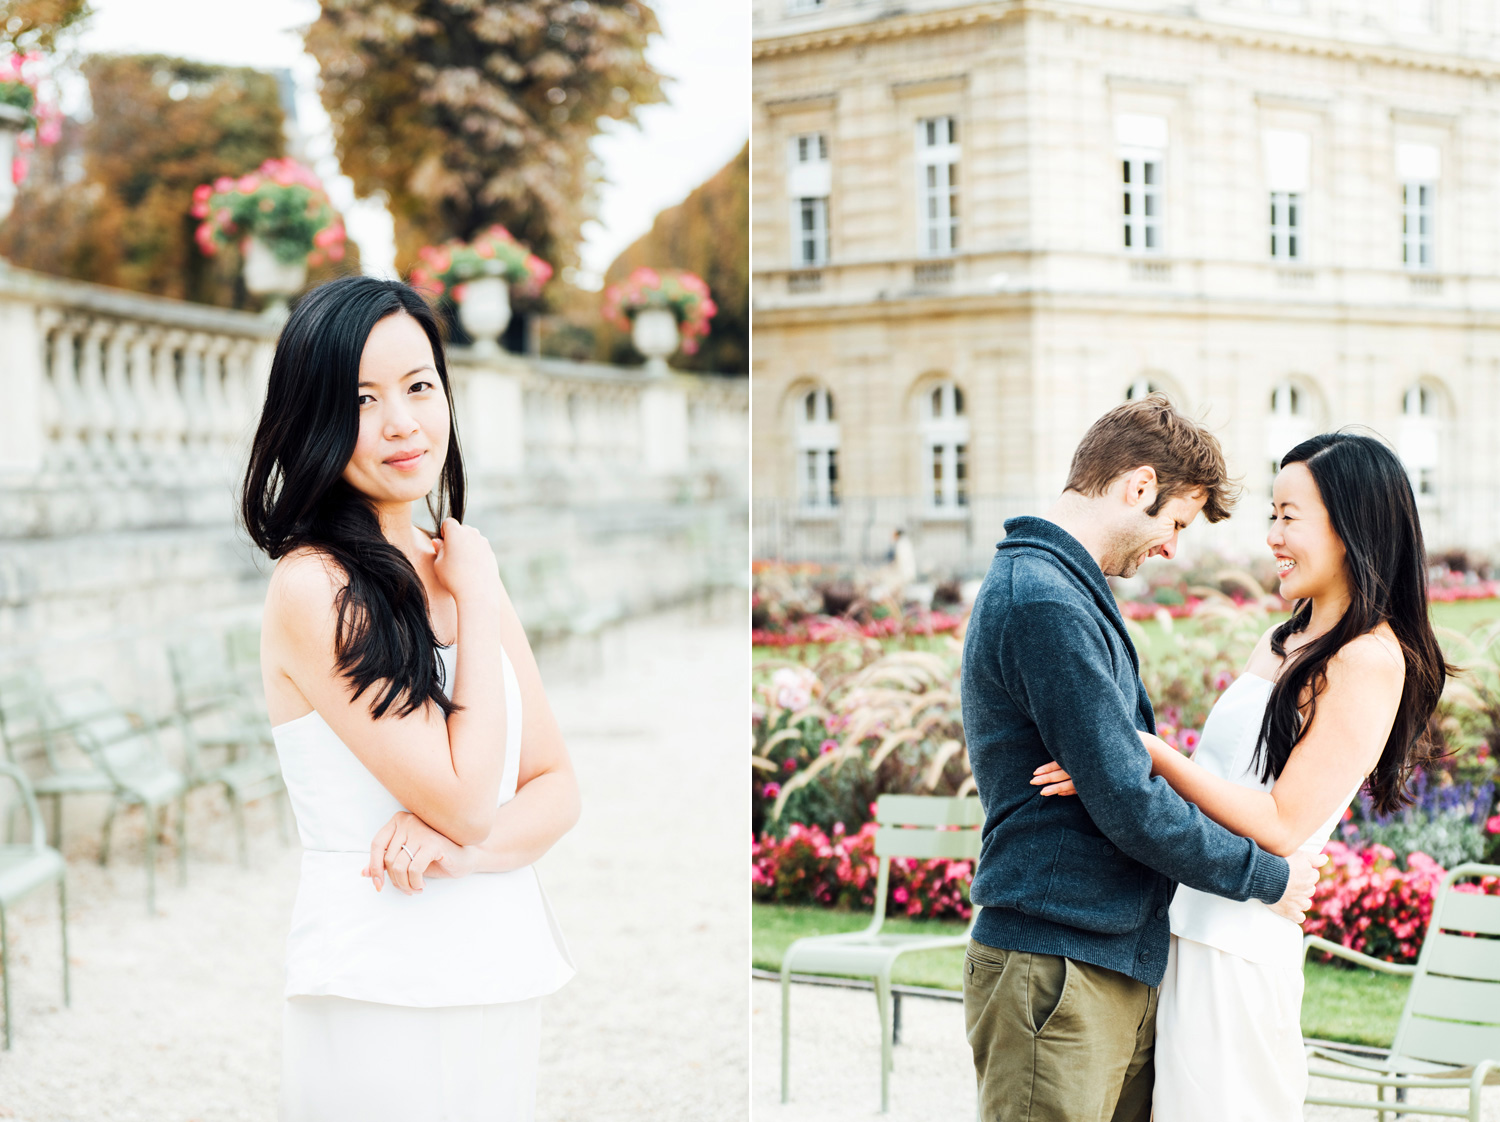 067-katie-mitchell-paris-engagement-photographer.jpg